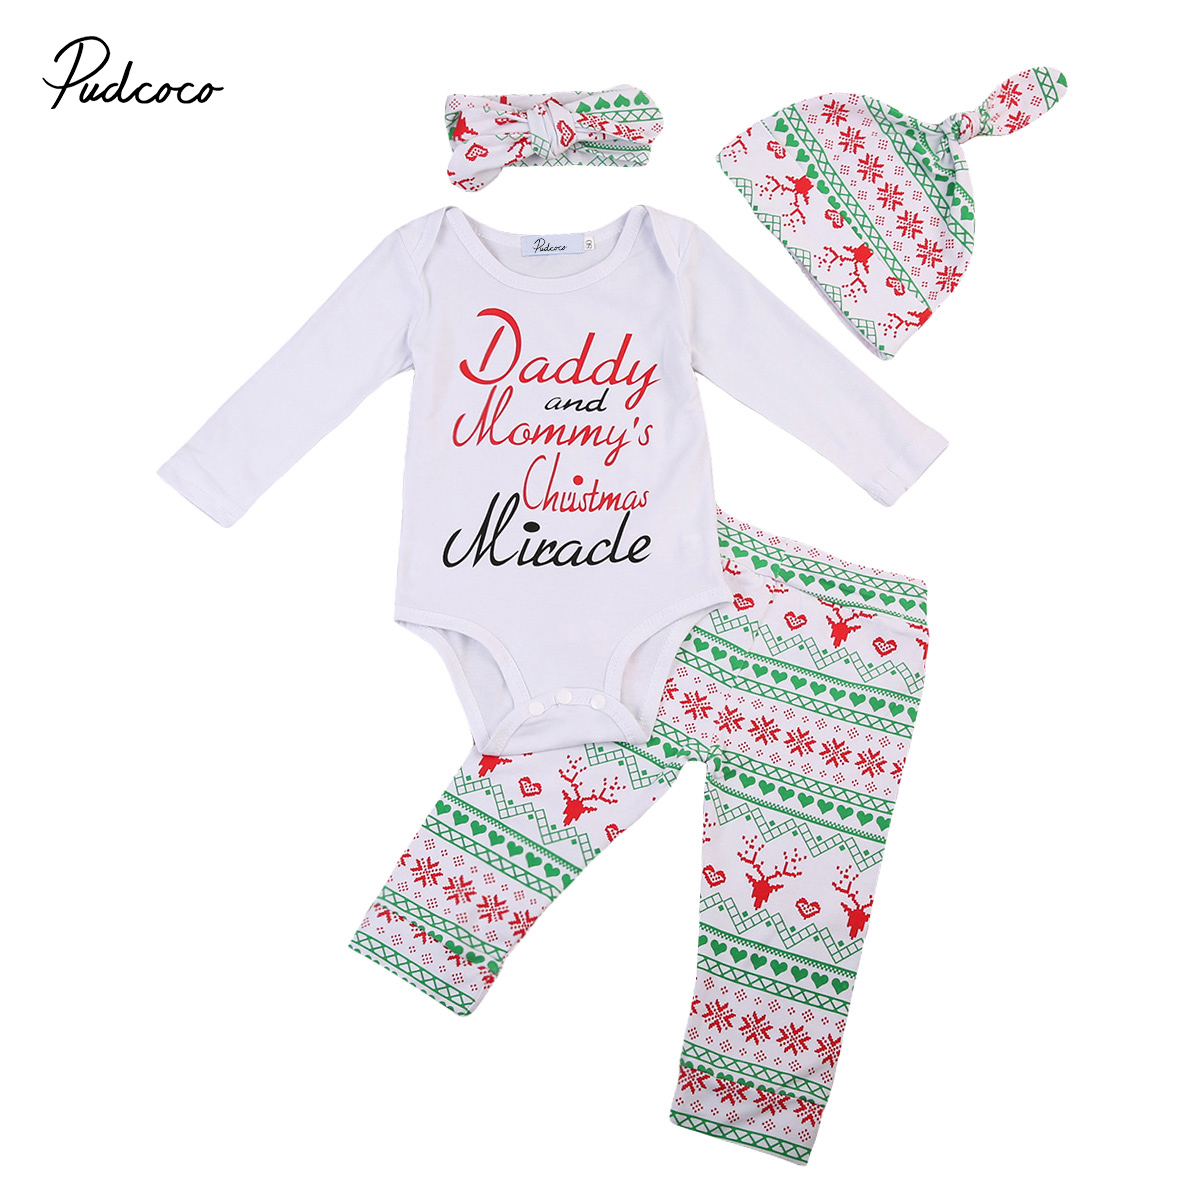 2017 Christmas Newborn Toddler Baby Boys Girls Winter Clothes Long Sleeve Romper Bodysuit+Pants Outfits Set 4Pcs Hat Handband 3pcs set newborn girls christmas clothes set warm hat letter print romper love arrow print pants leisure toddler baby outfit set